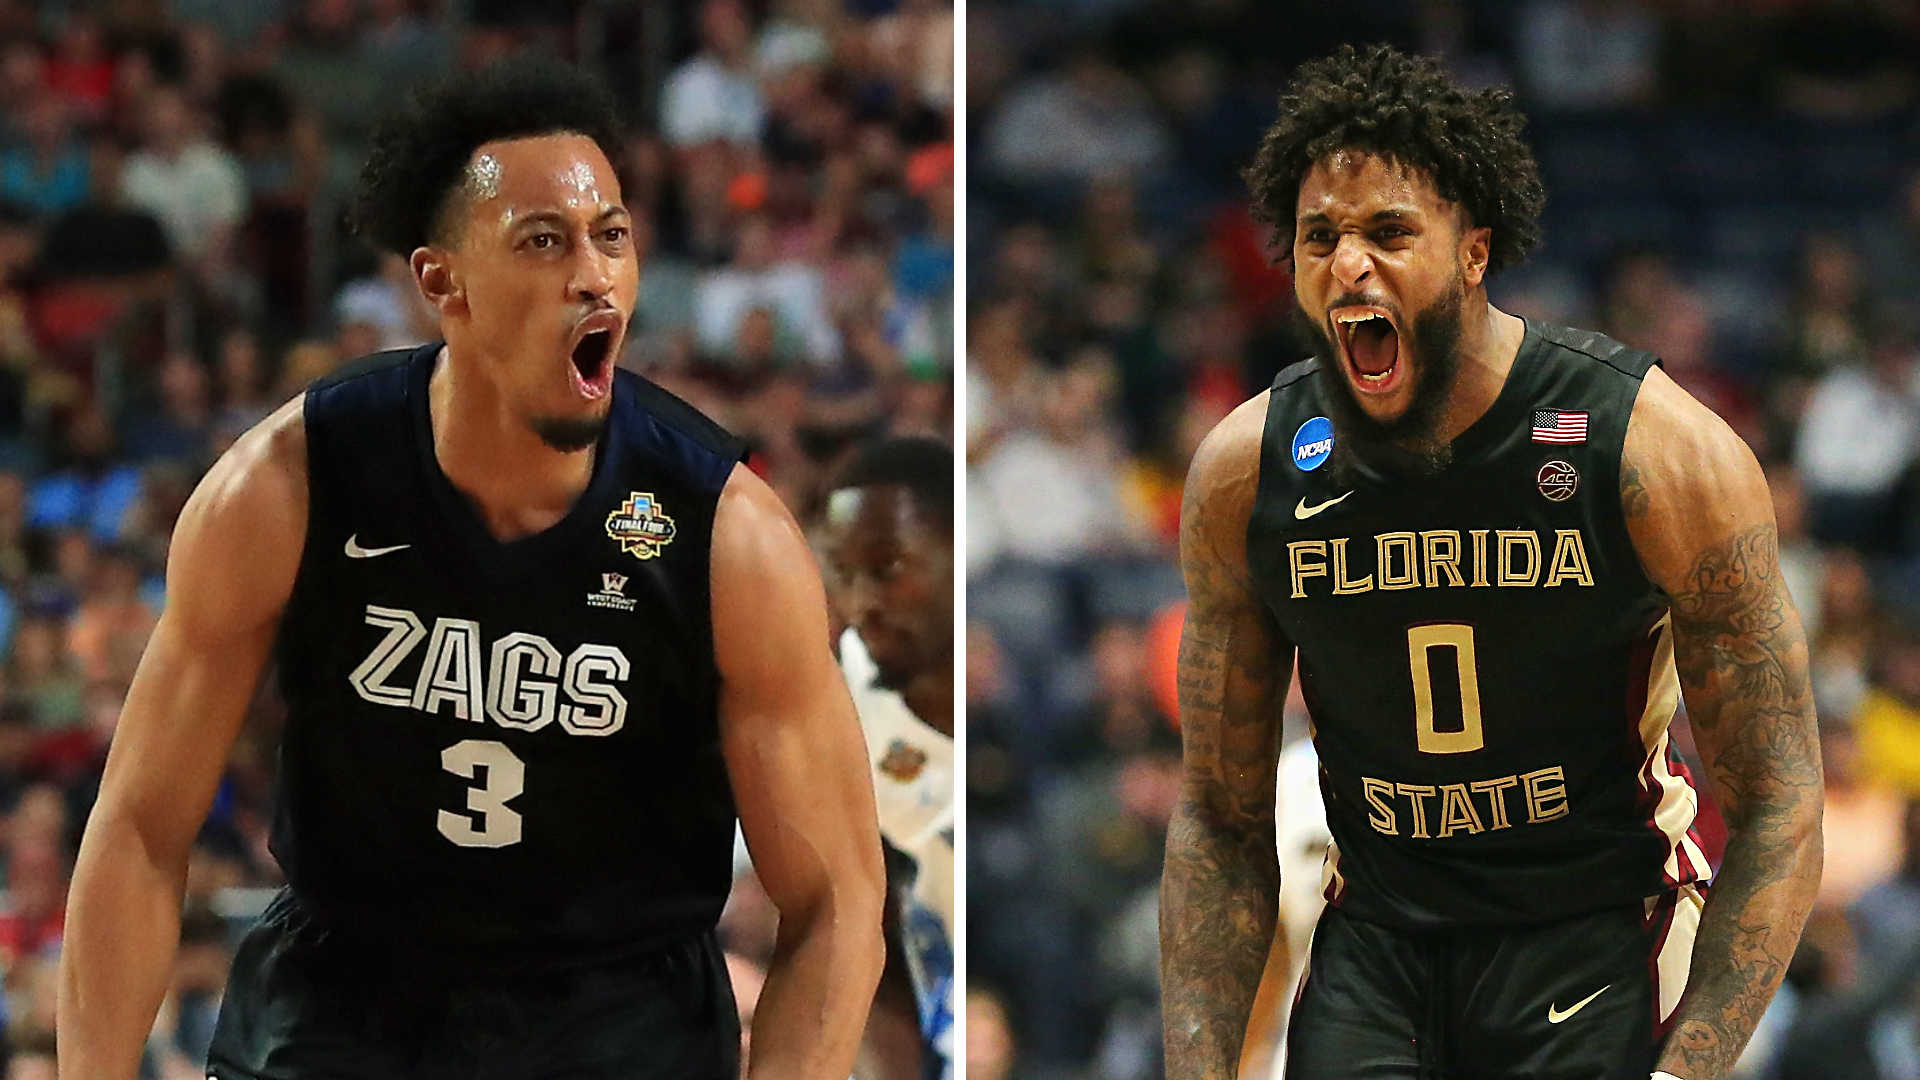 Sweet Revenge! FSU Rallies to Stun Xavier, 75-70